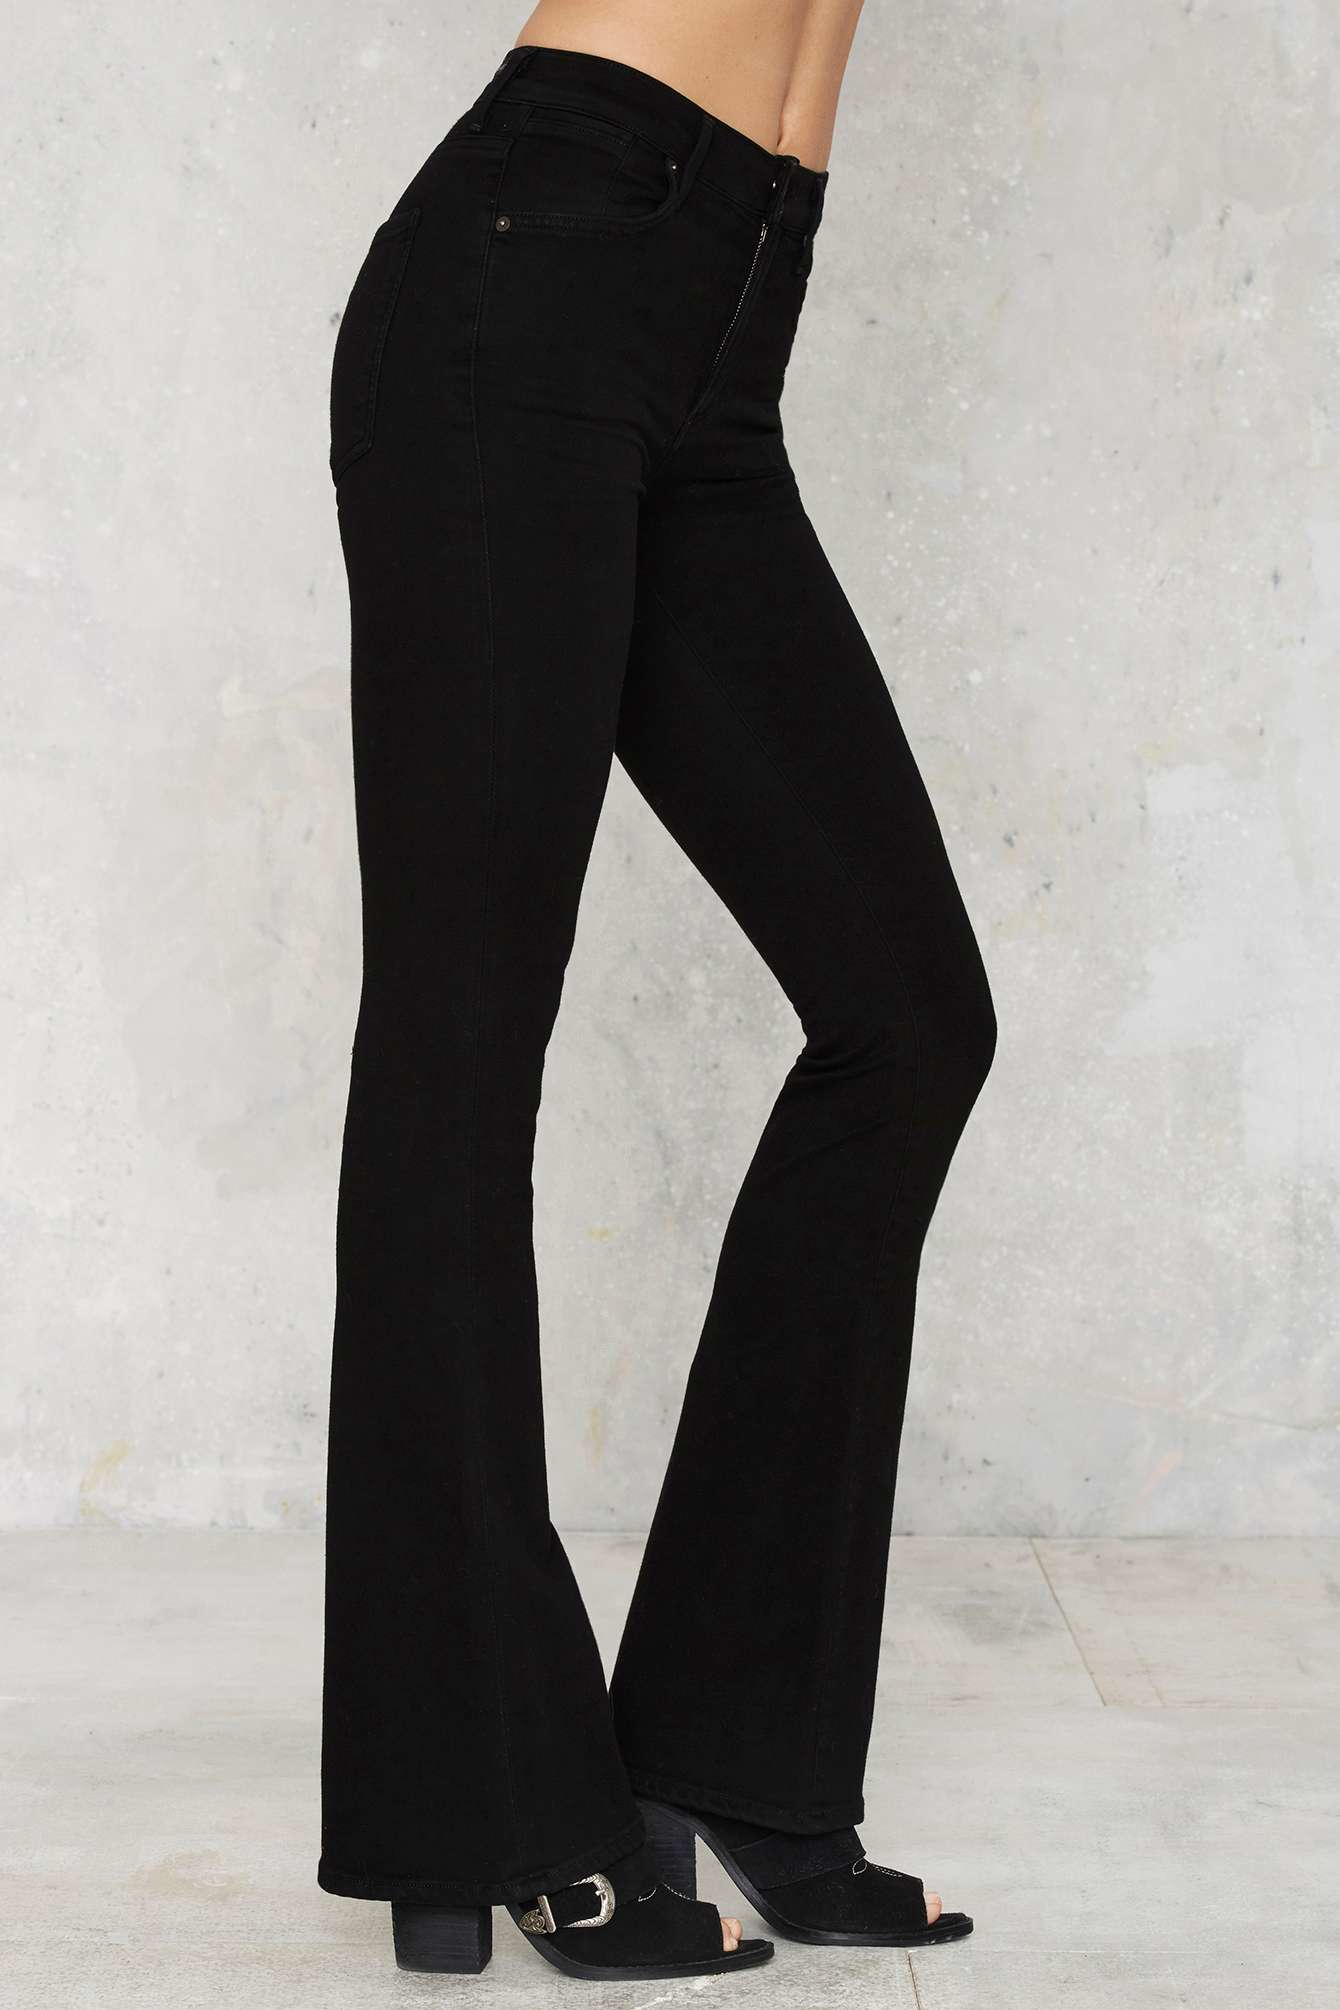 Nasty gal Citizens Of Humanity Fleetwood High-waisted Flare Jeans ...